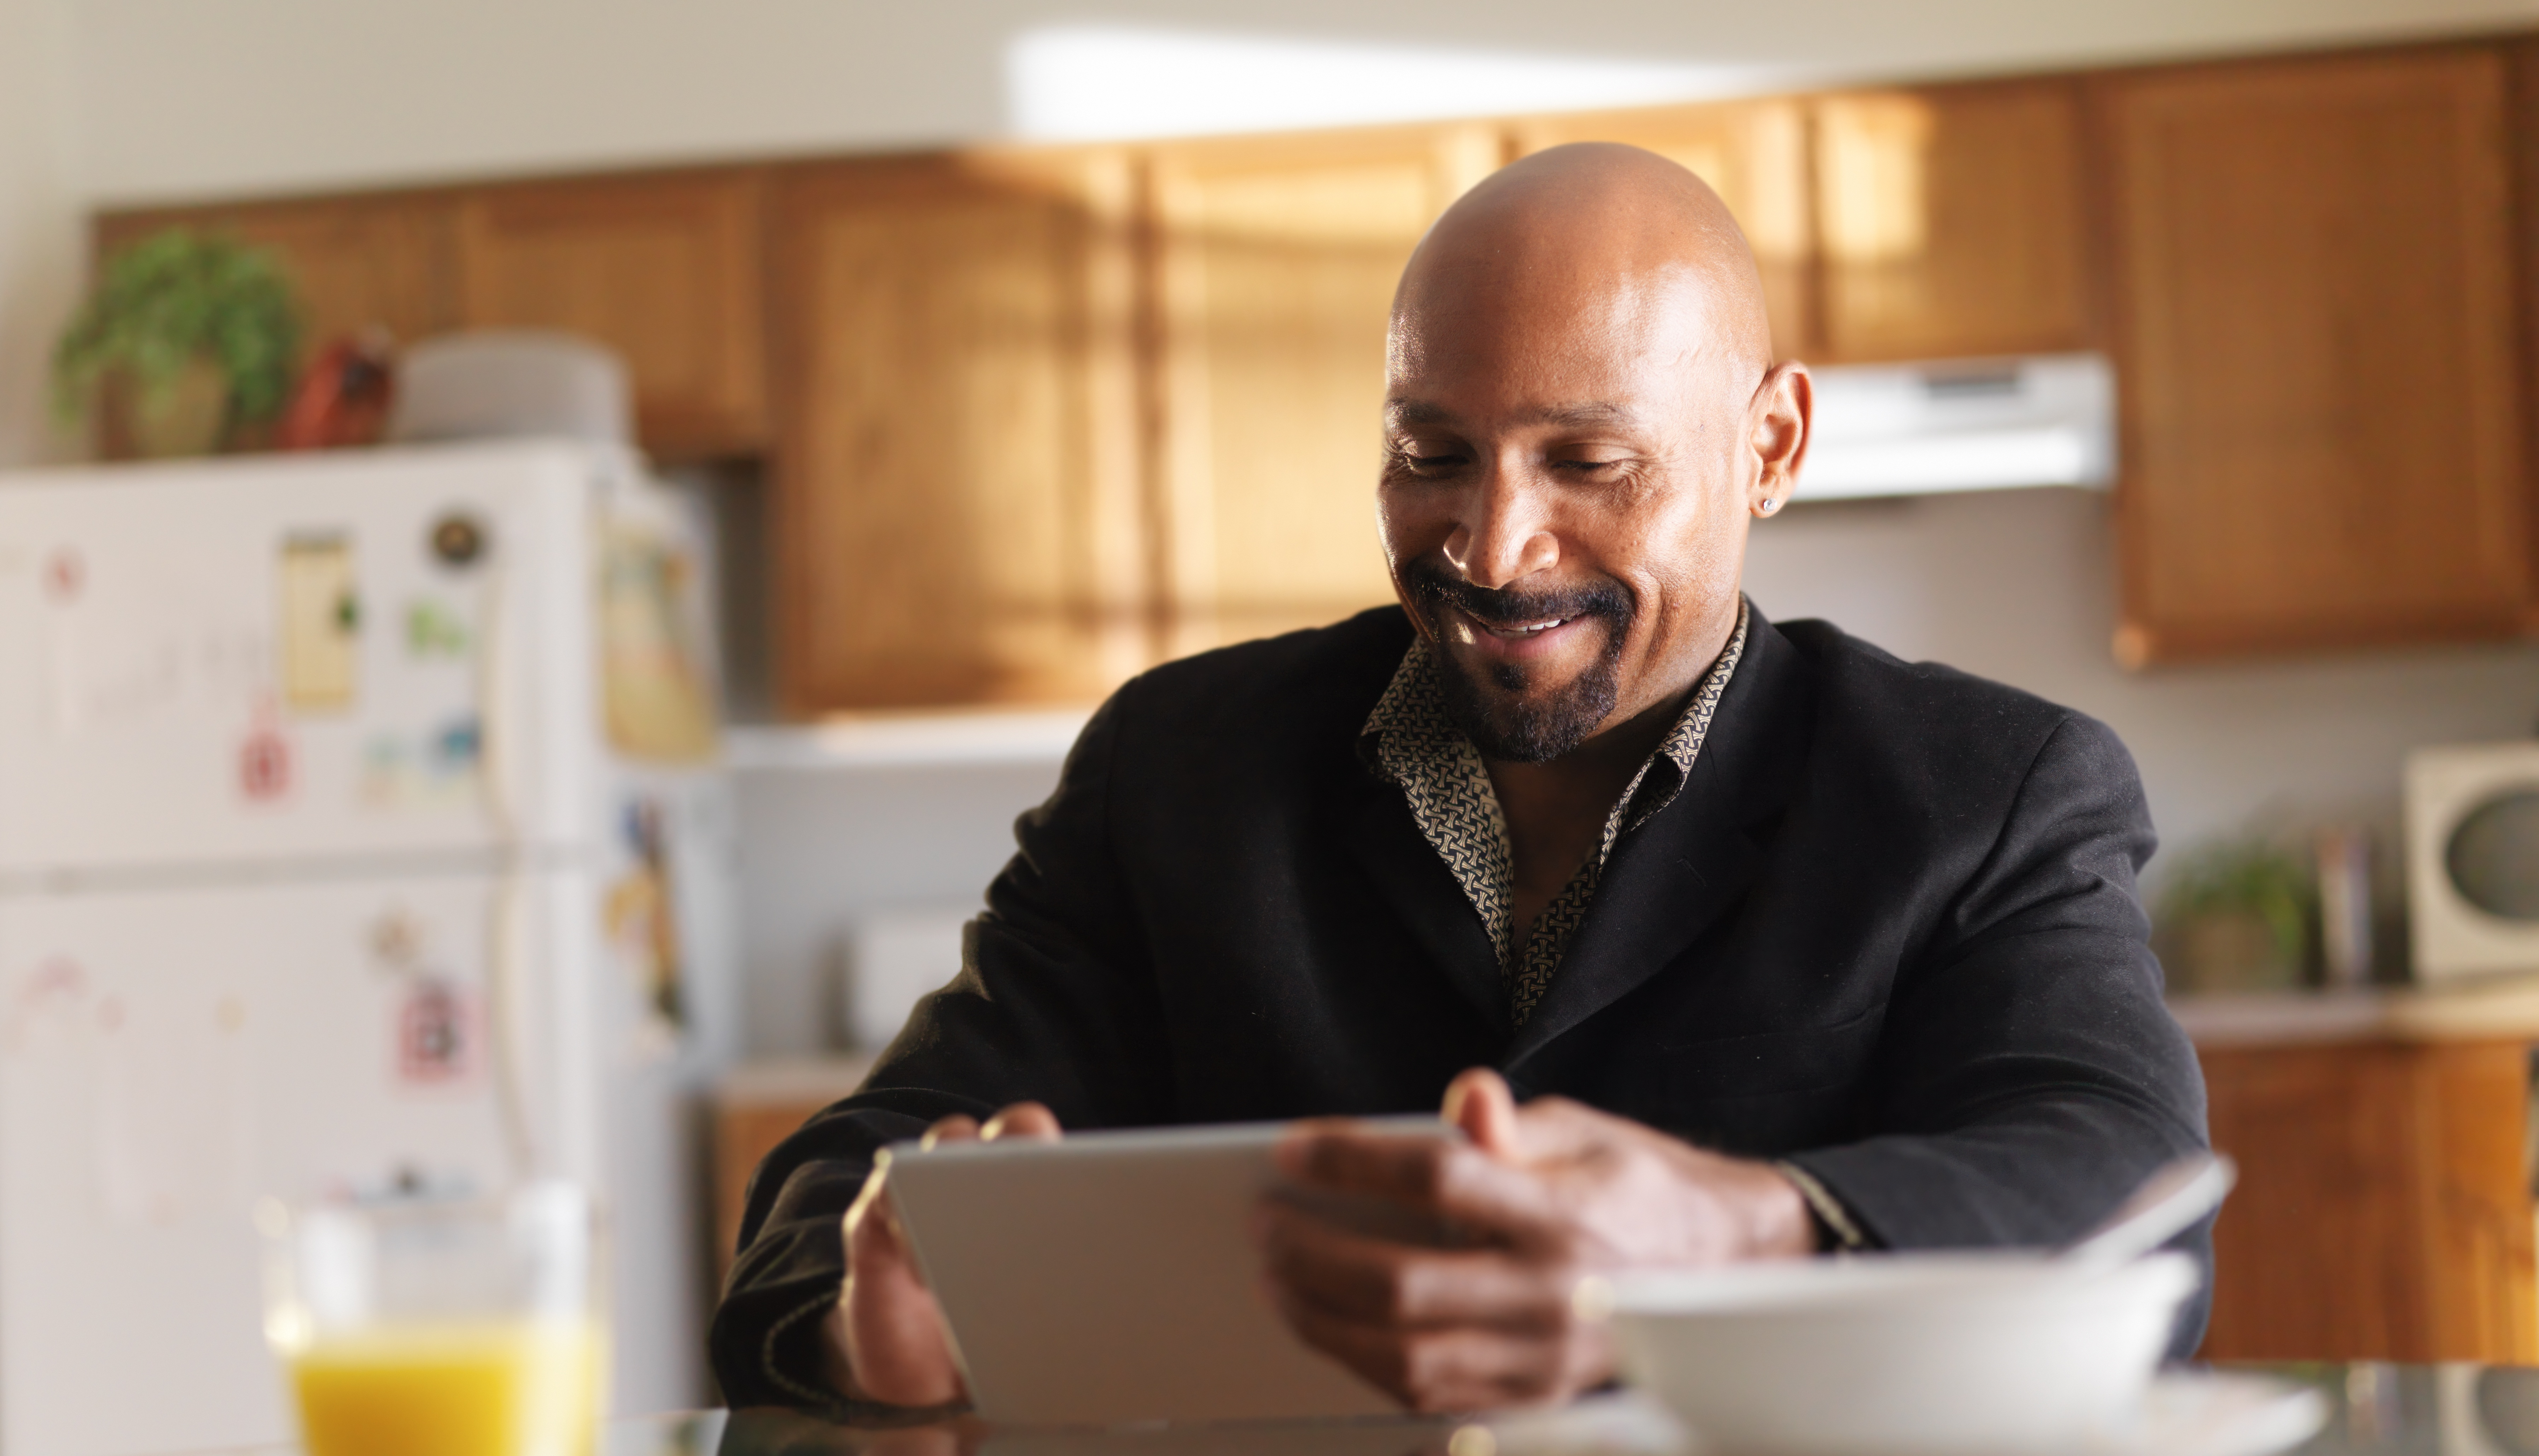 middle aged man in kitchen on tablet